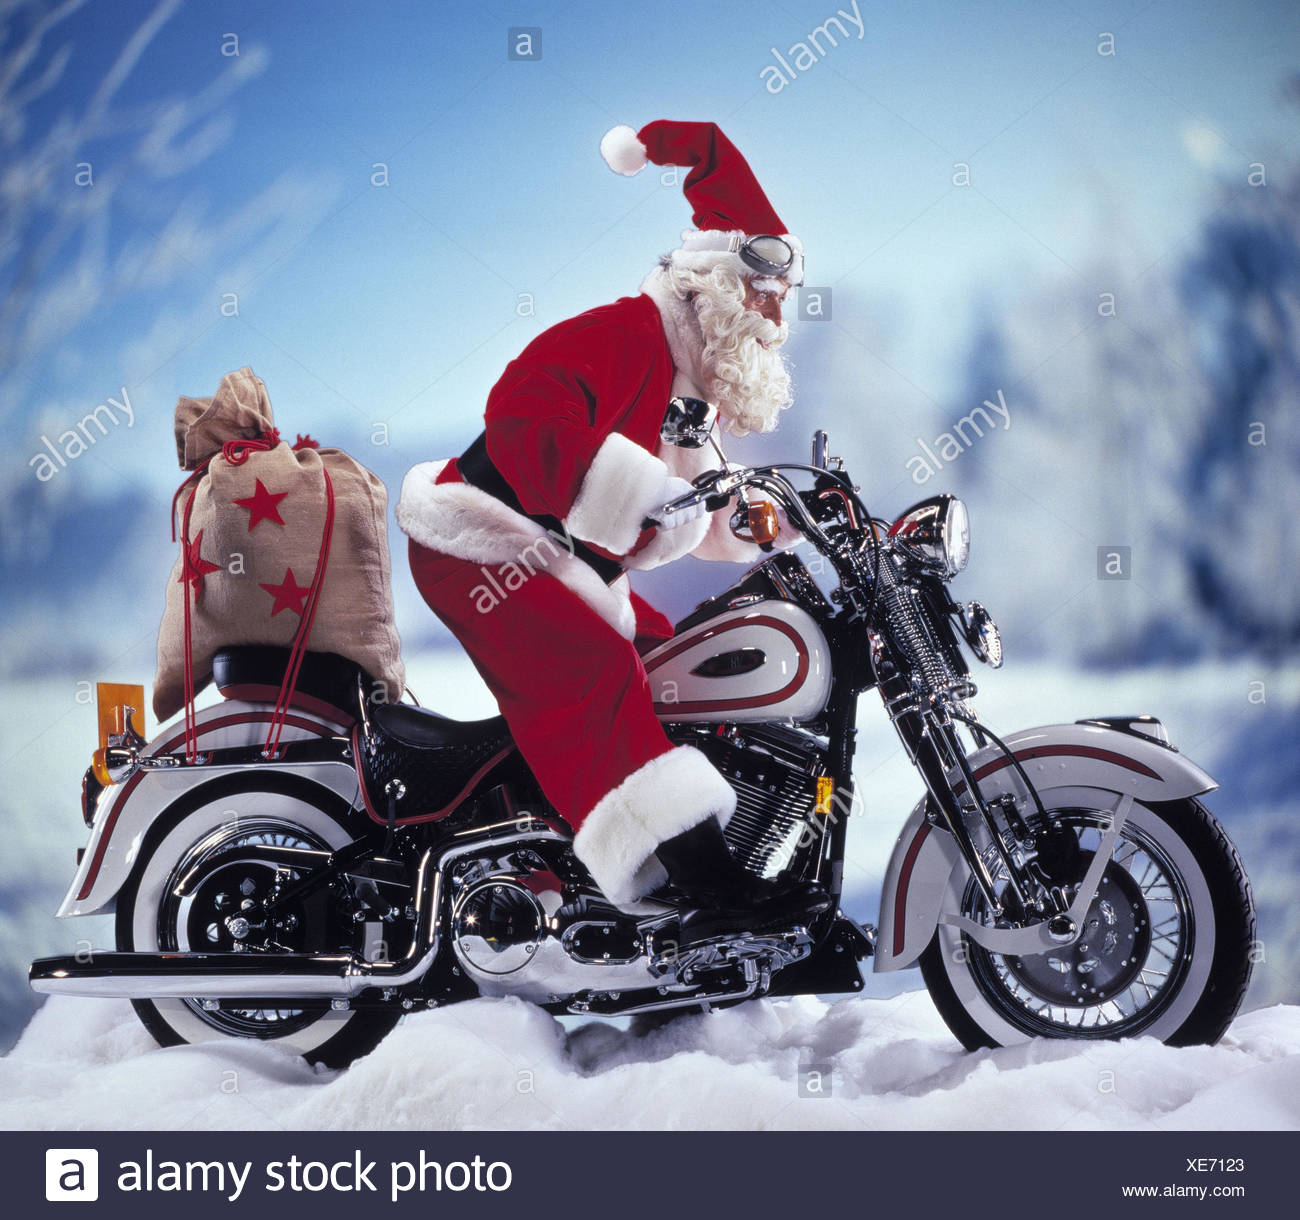 Harley Weihnachtsgrüße.Pre Yule Tide Stock Photos Pre Yule Tide Stock Images Alamy